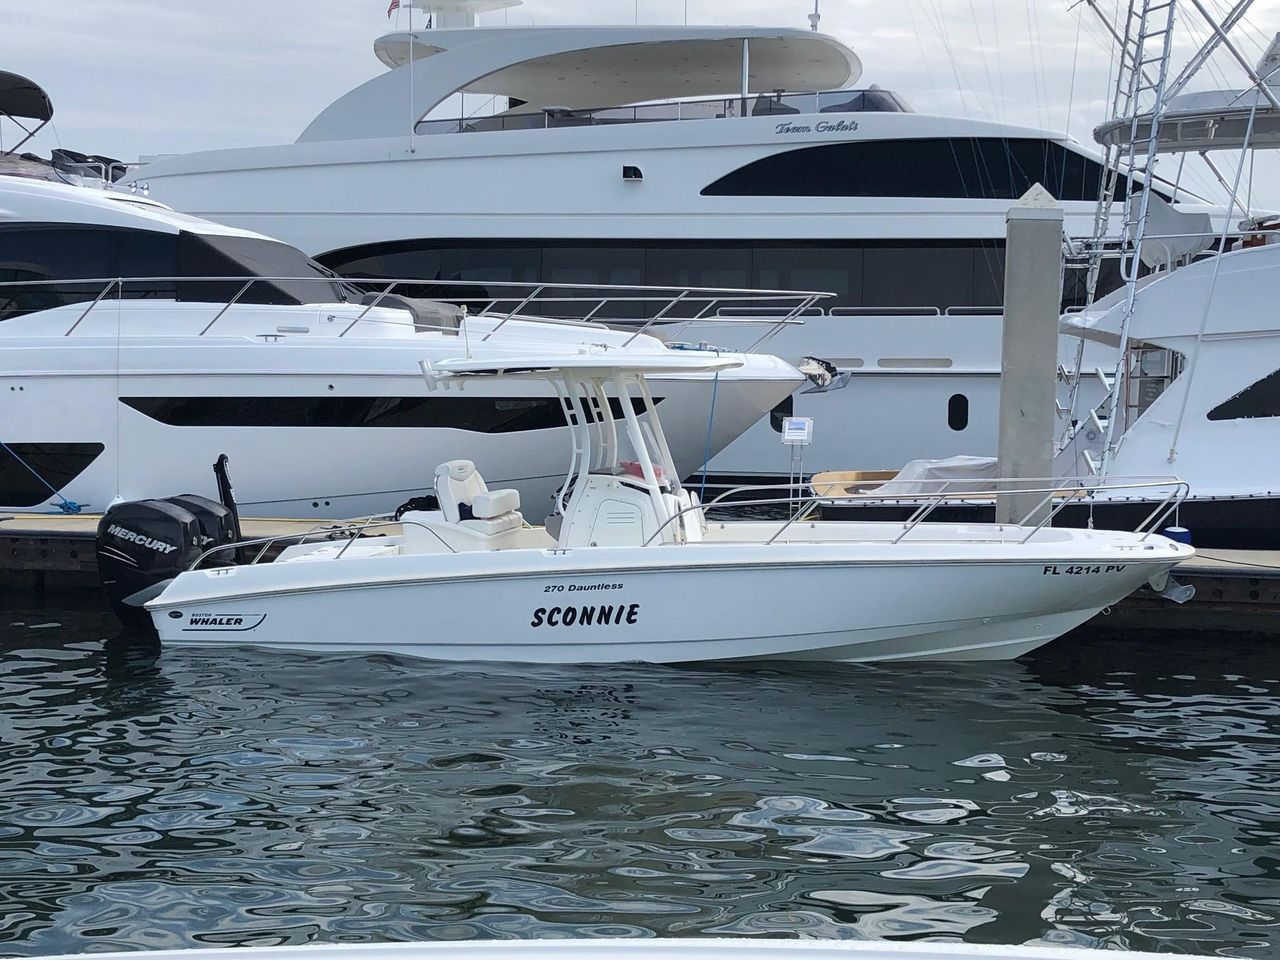 2014 Used Boston Whaler 270 Dauntless (With images